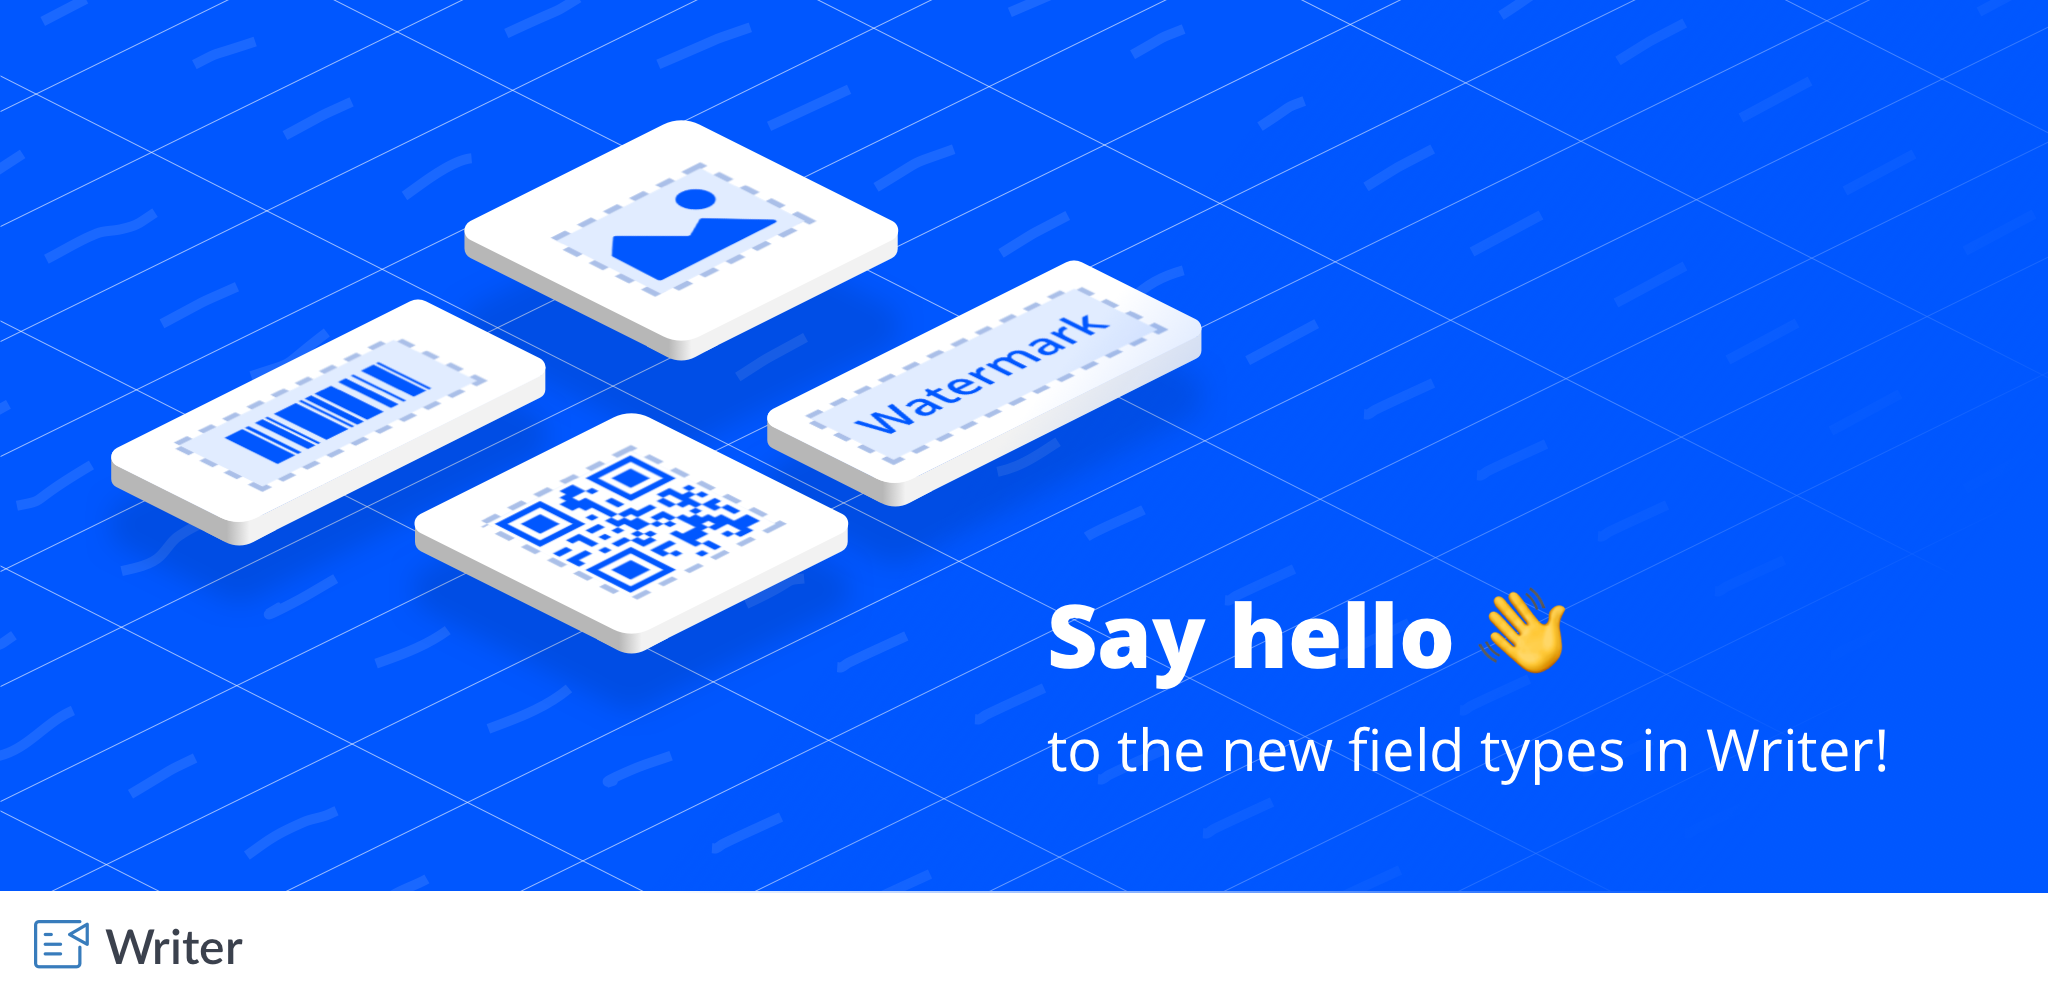 Introducing Writer's new merge fields: add QR Codes and more